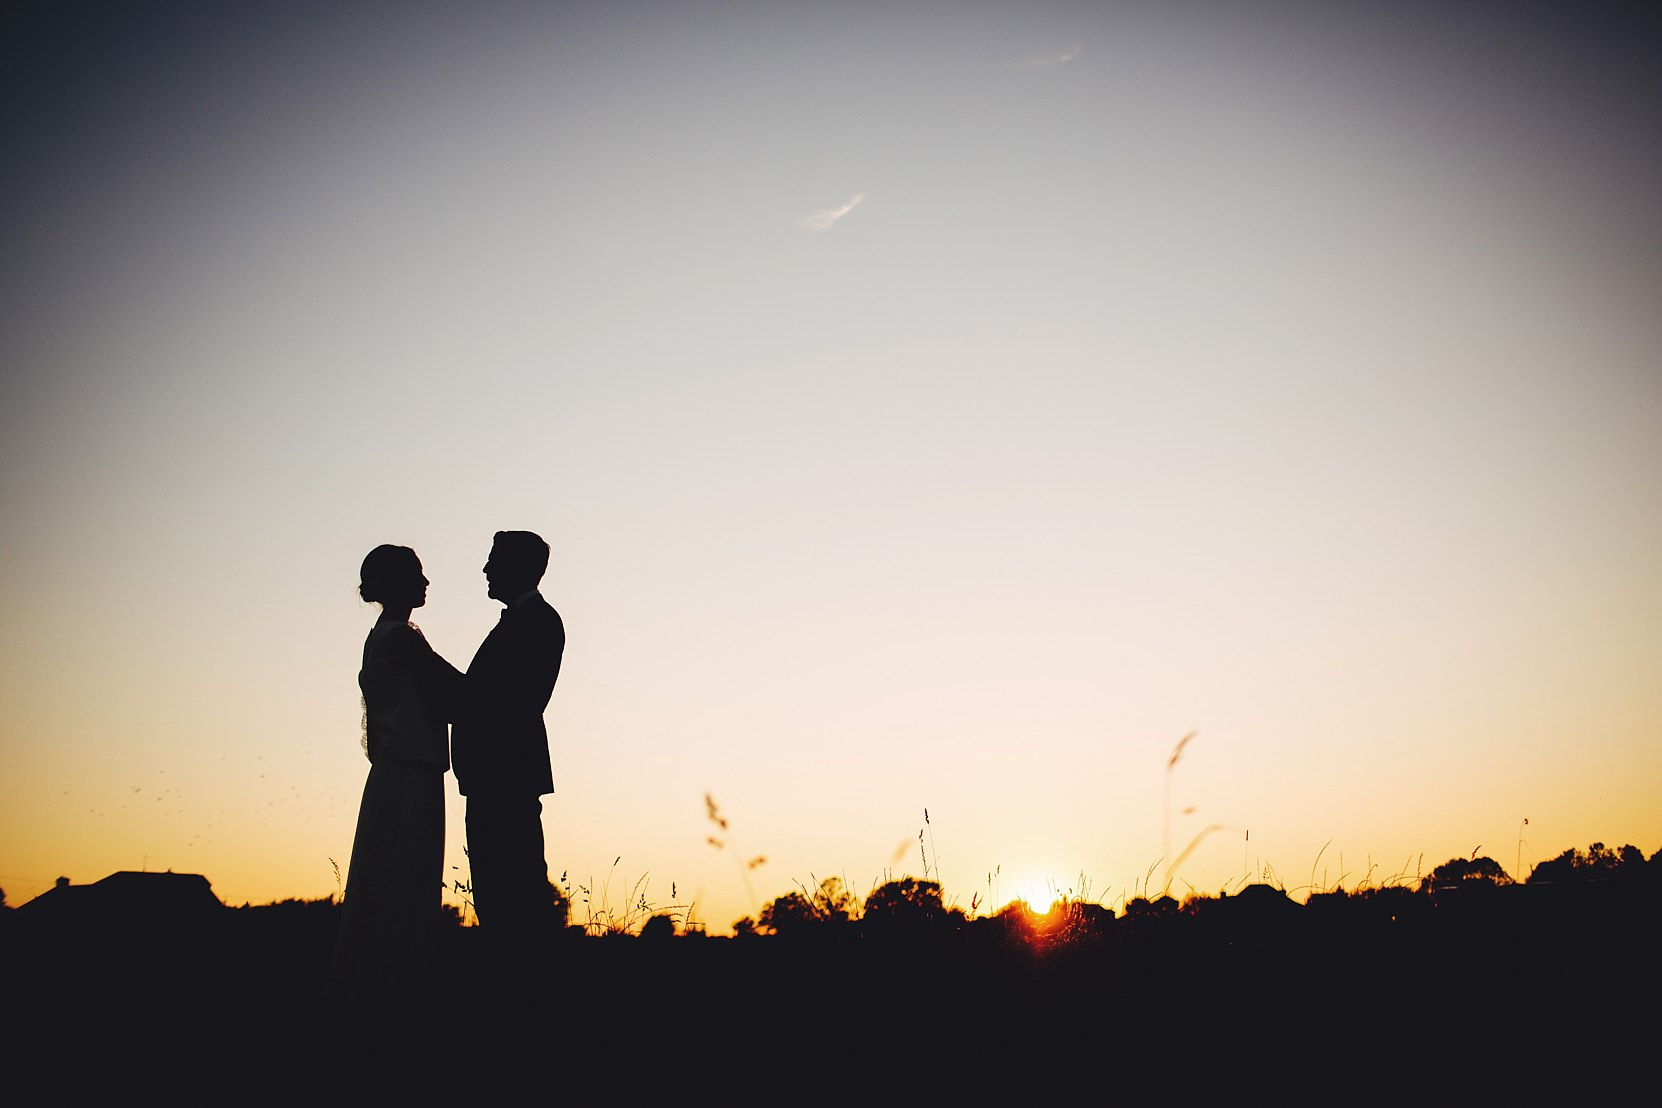 Romantic shot of a bride and groom in a beautiful setting at sunset